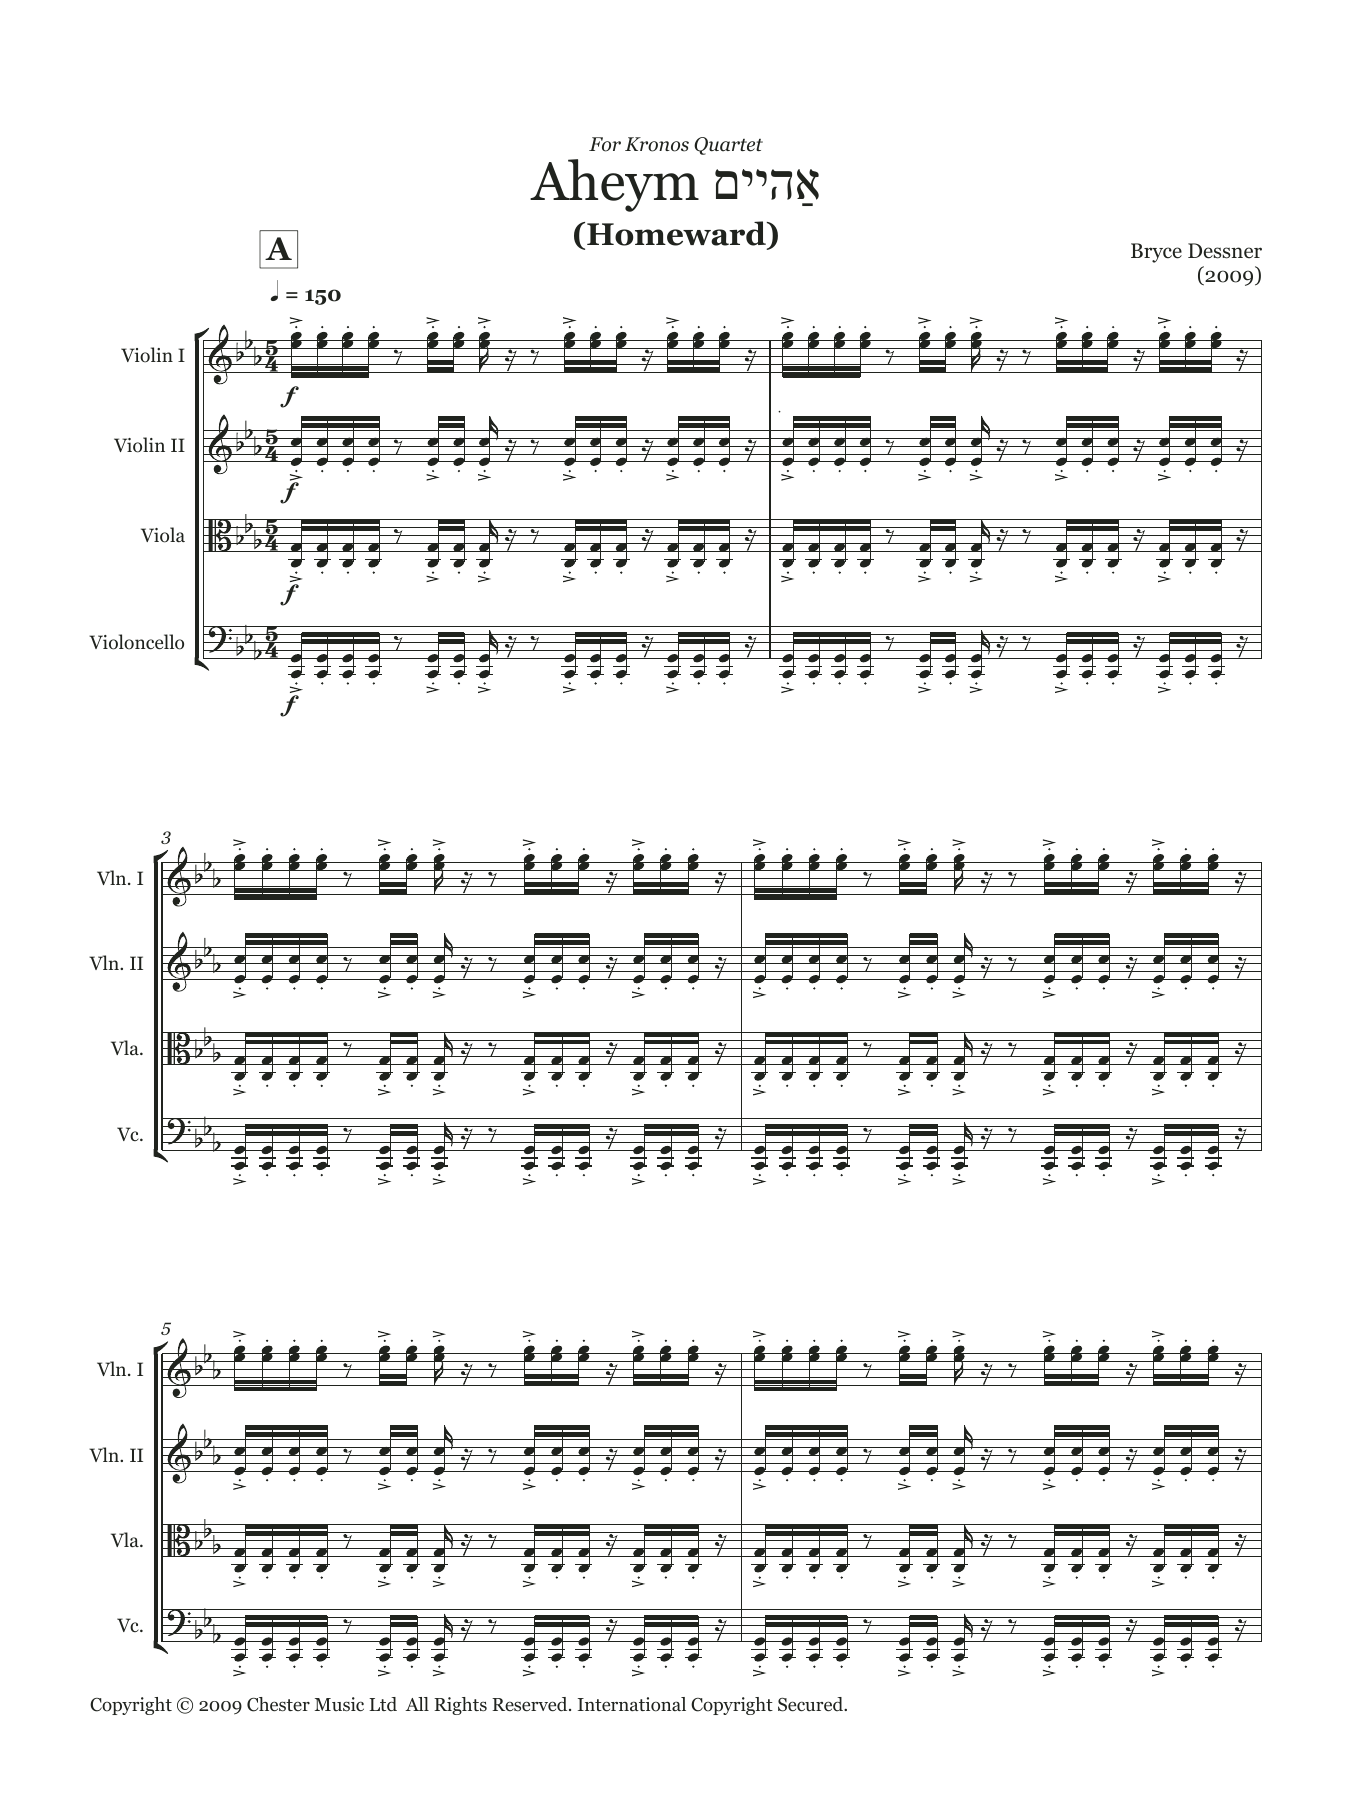 Bryce Dessner - Aheym (String quartet score and parts)